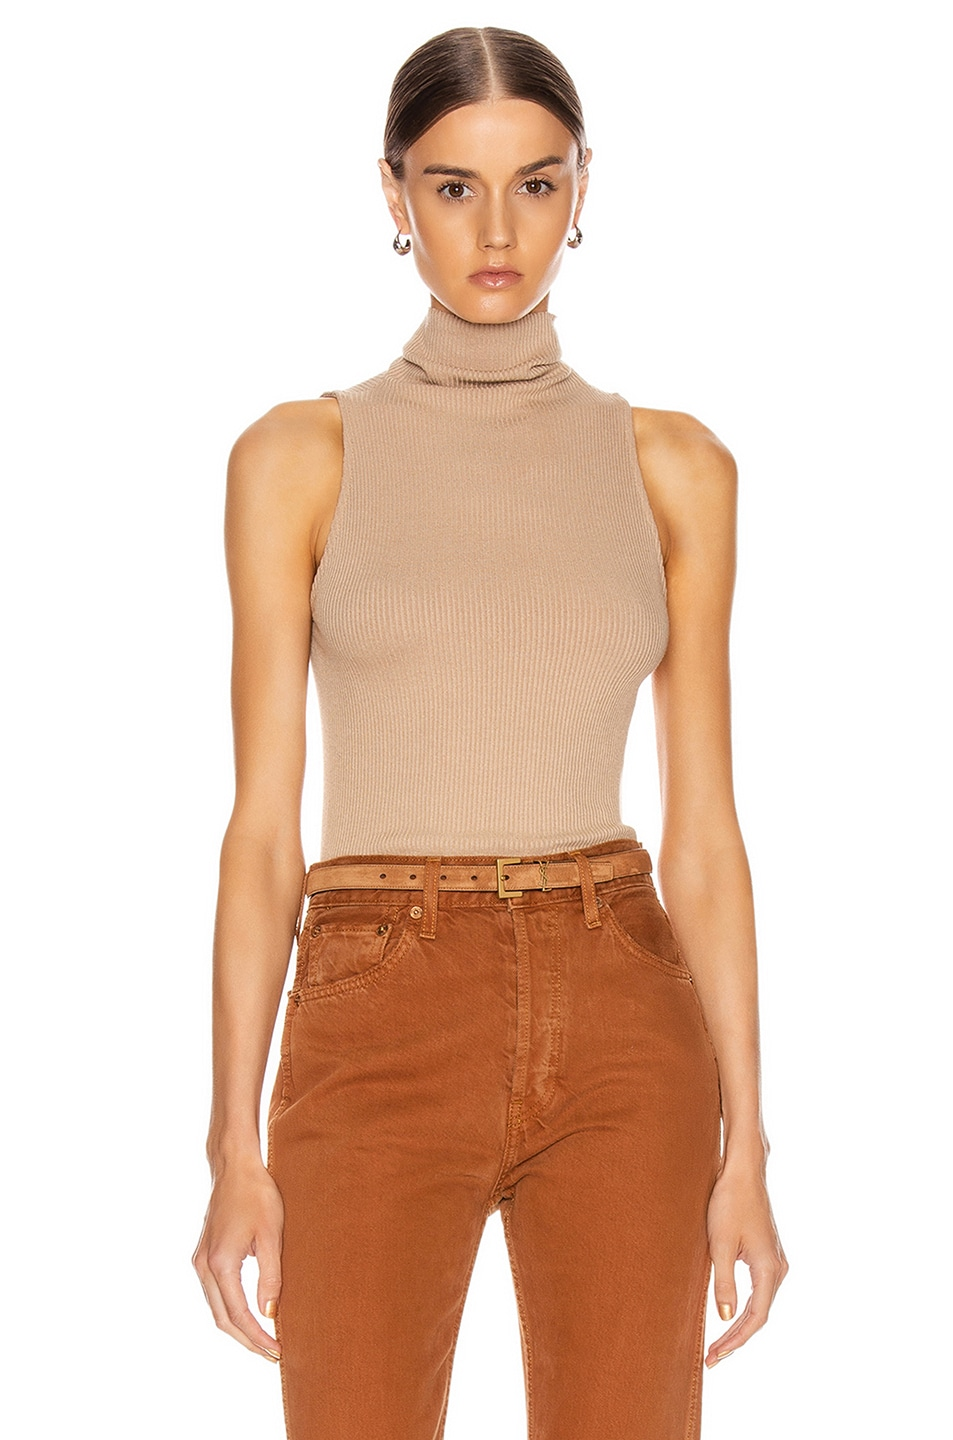 Image 1 of Enza Costa for FWRD Rib Sleeveless Turtleneck in Sandstone